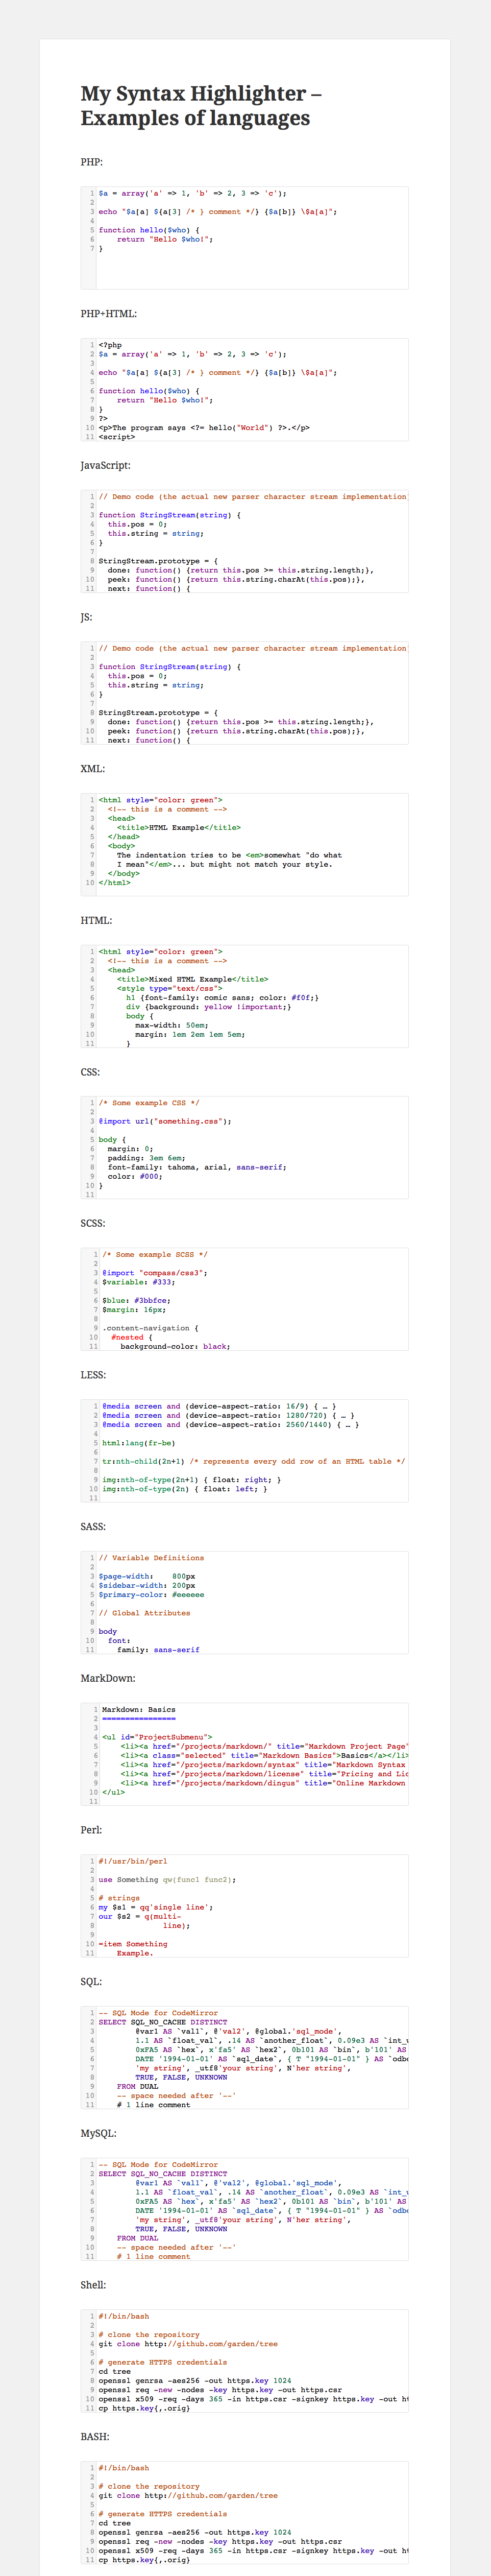 "WP plugin ""My Syntax Highlighter"" by Space X-Chimp"